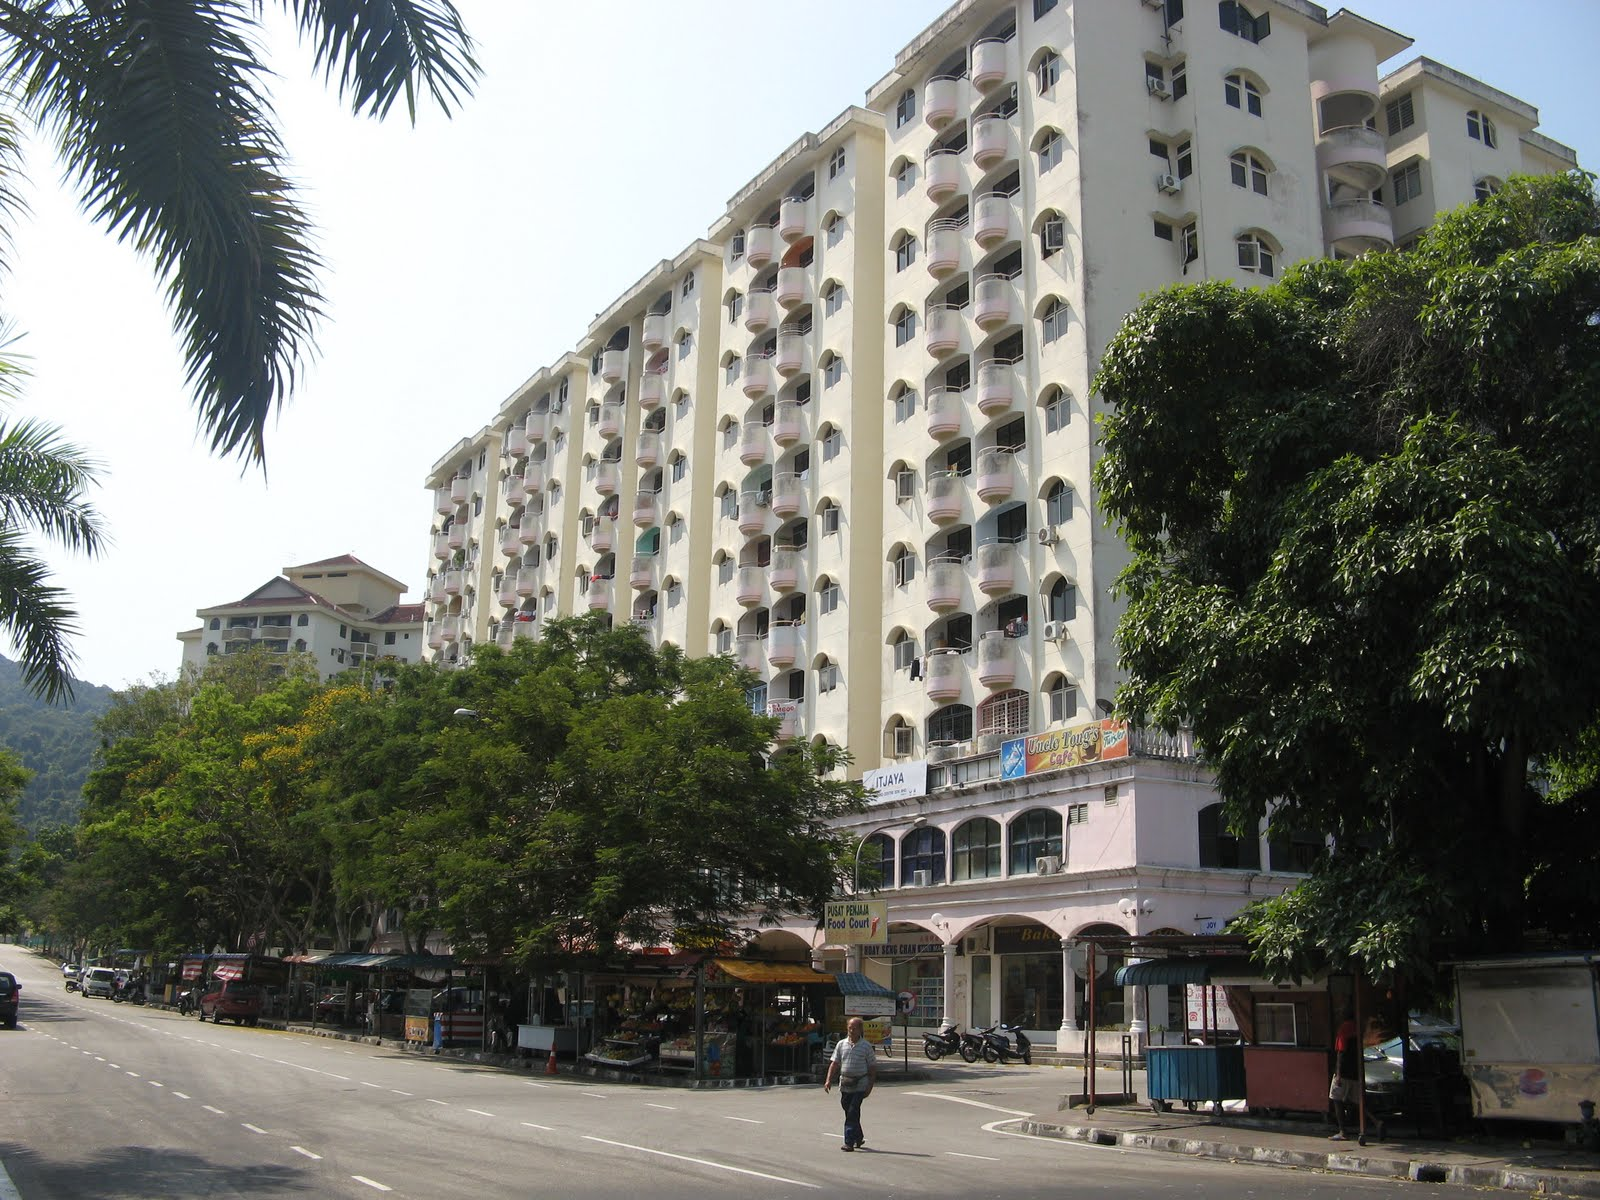 penang mutiara The last guests checked out nine years ago and the former penang mutiara beach resort in teluk bahang has been vacant ever since.